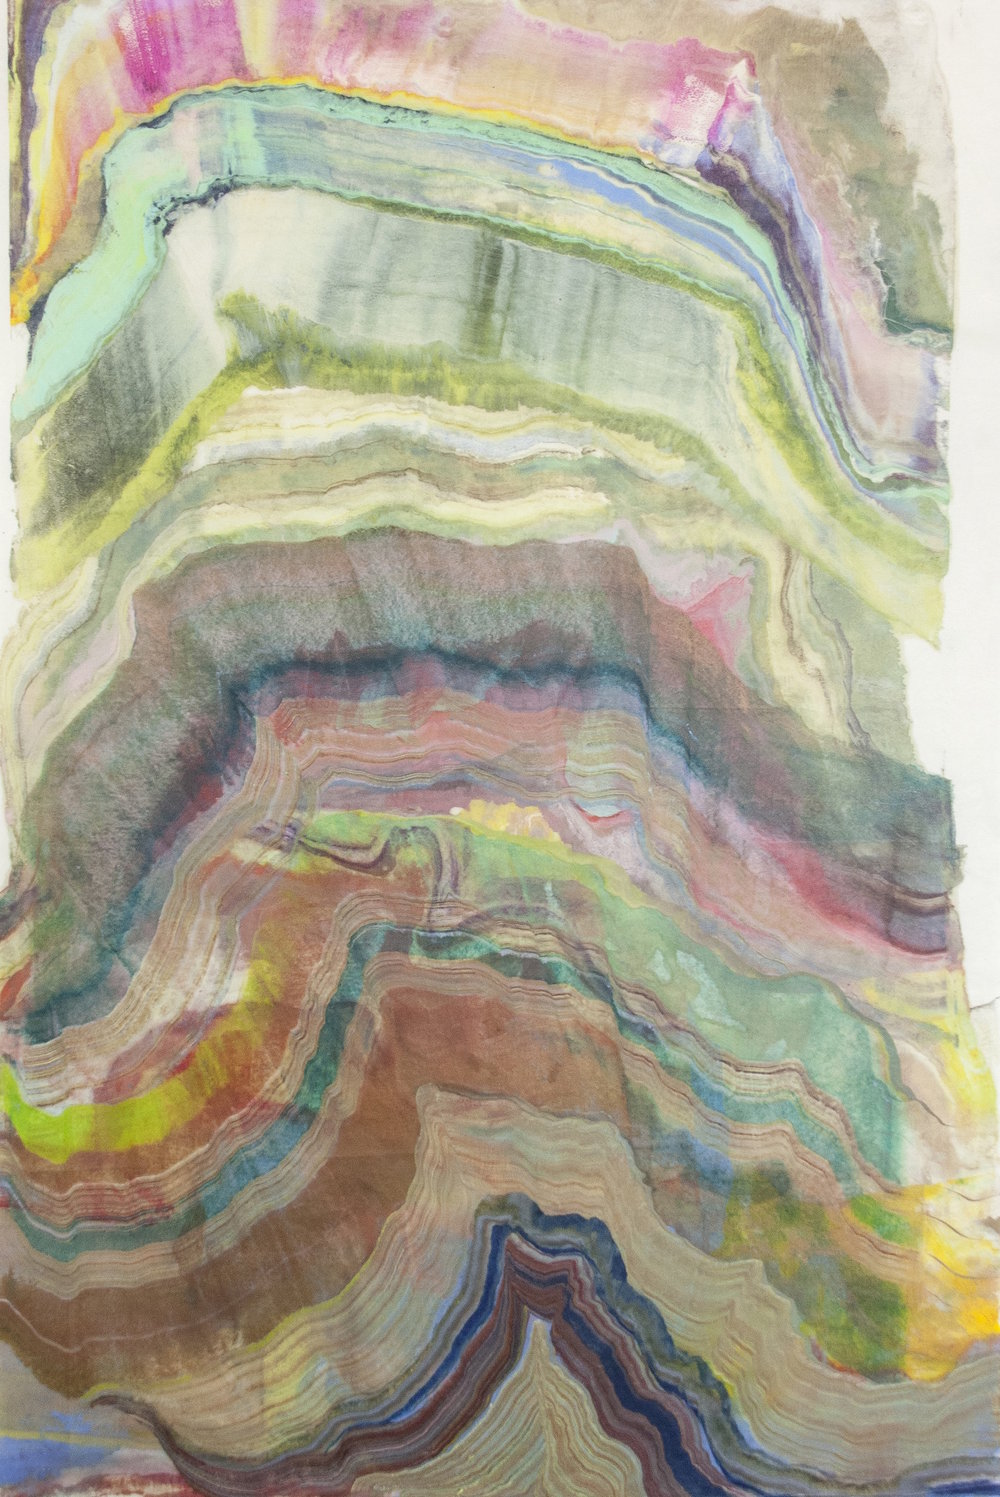 Foundation 7 , 2017, encaustic (pigmented beeswax) monotype on kawashi, 39 x 26 inches (unframed), $1000. (unframed) *can be oriented vertically or horizontally